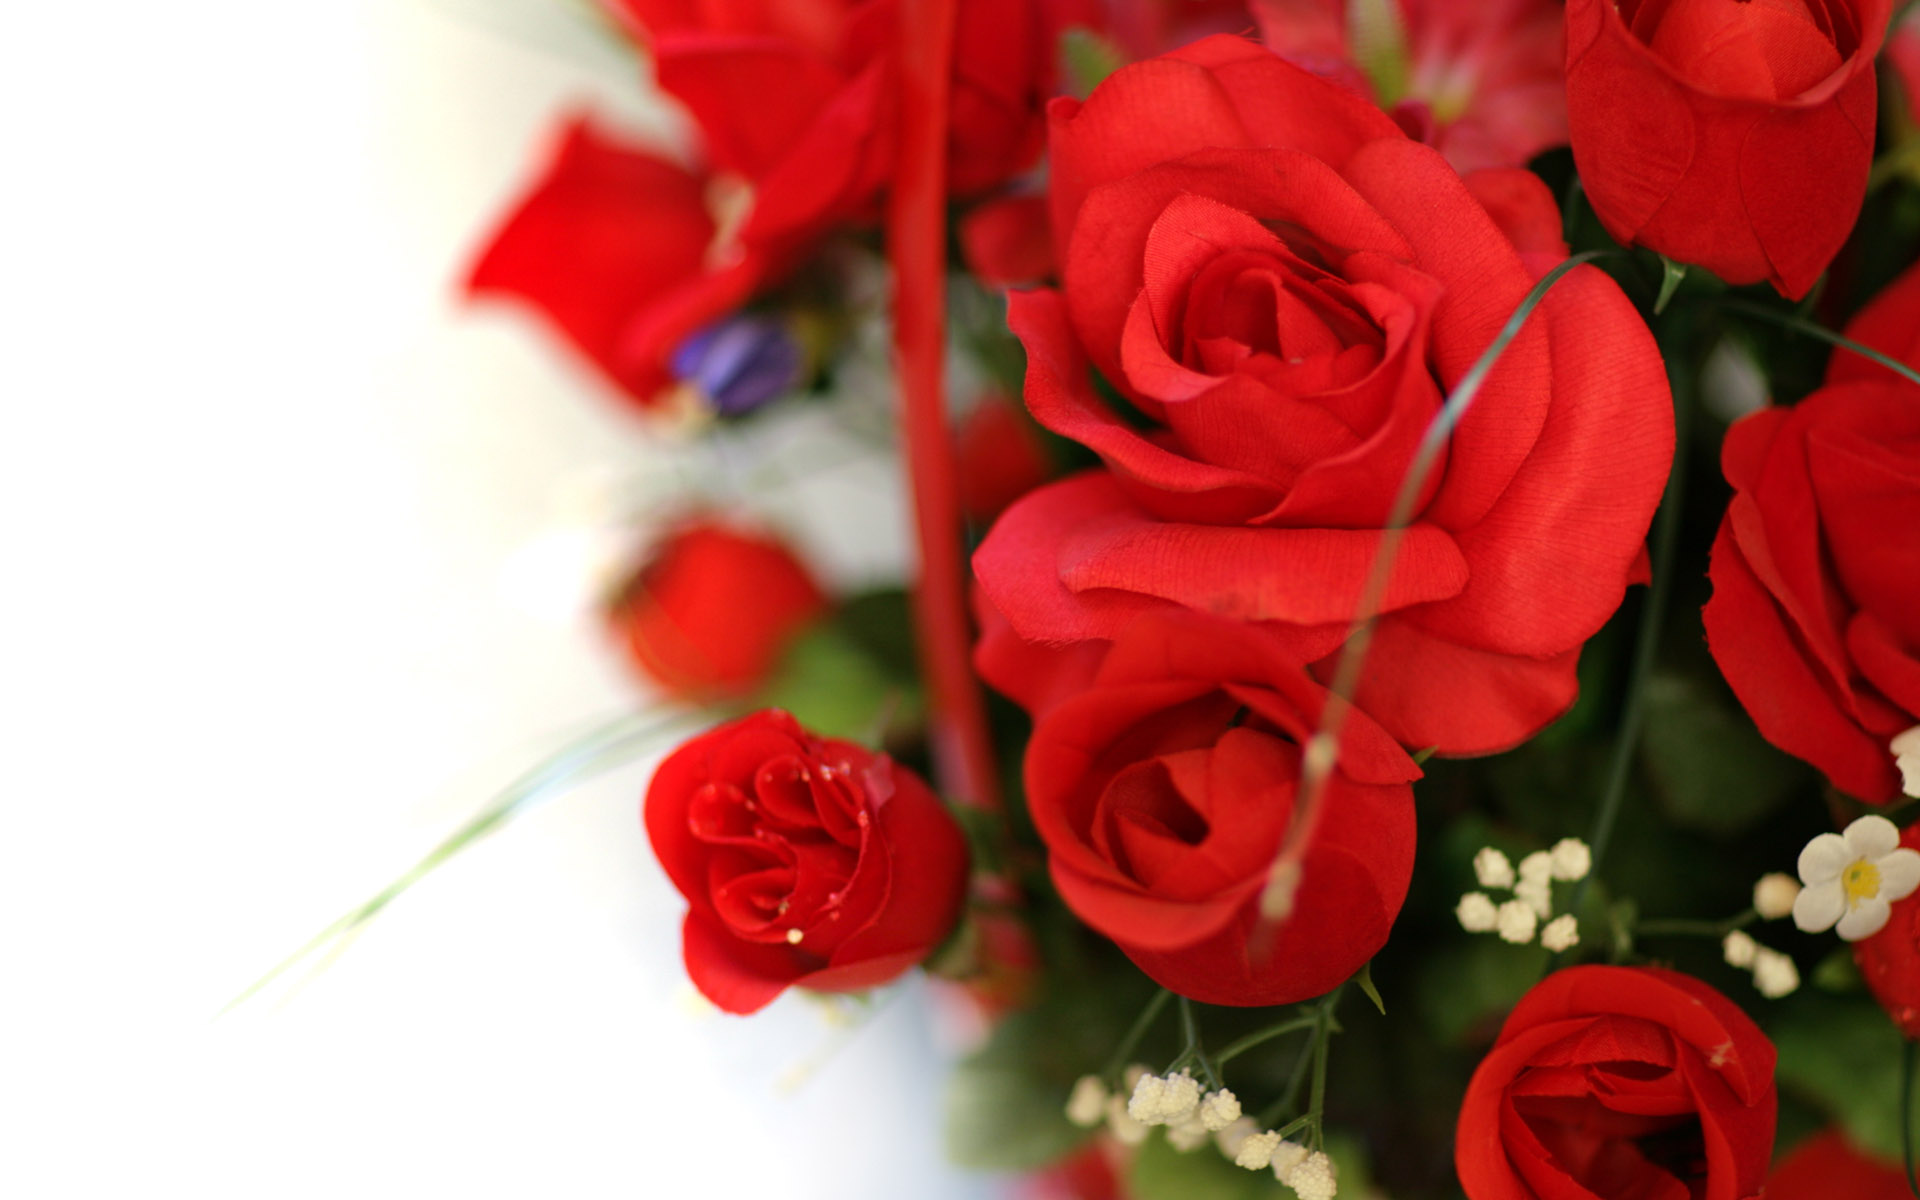 photos of red roses download free